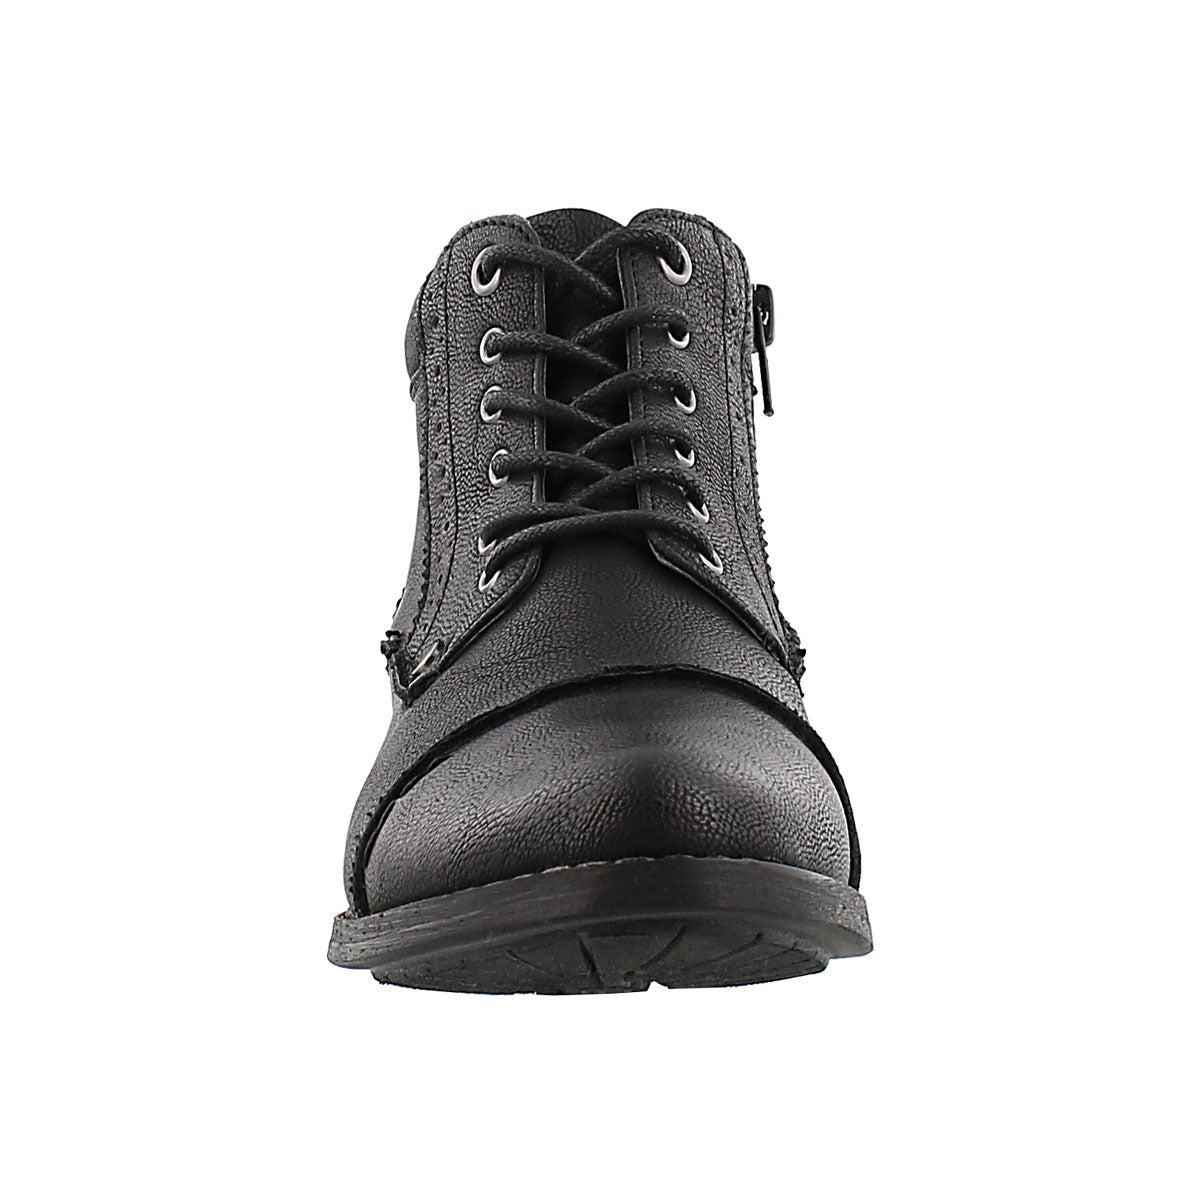 Lds Belicia black lace up ankle boot